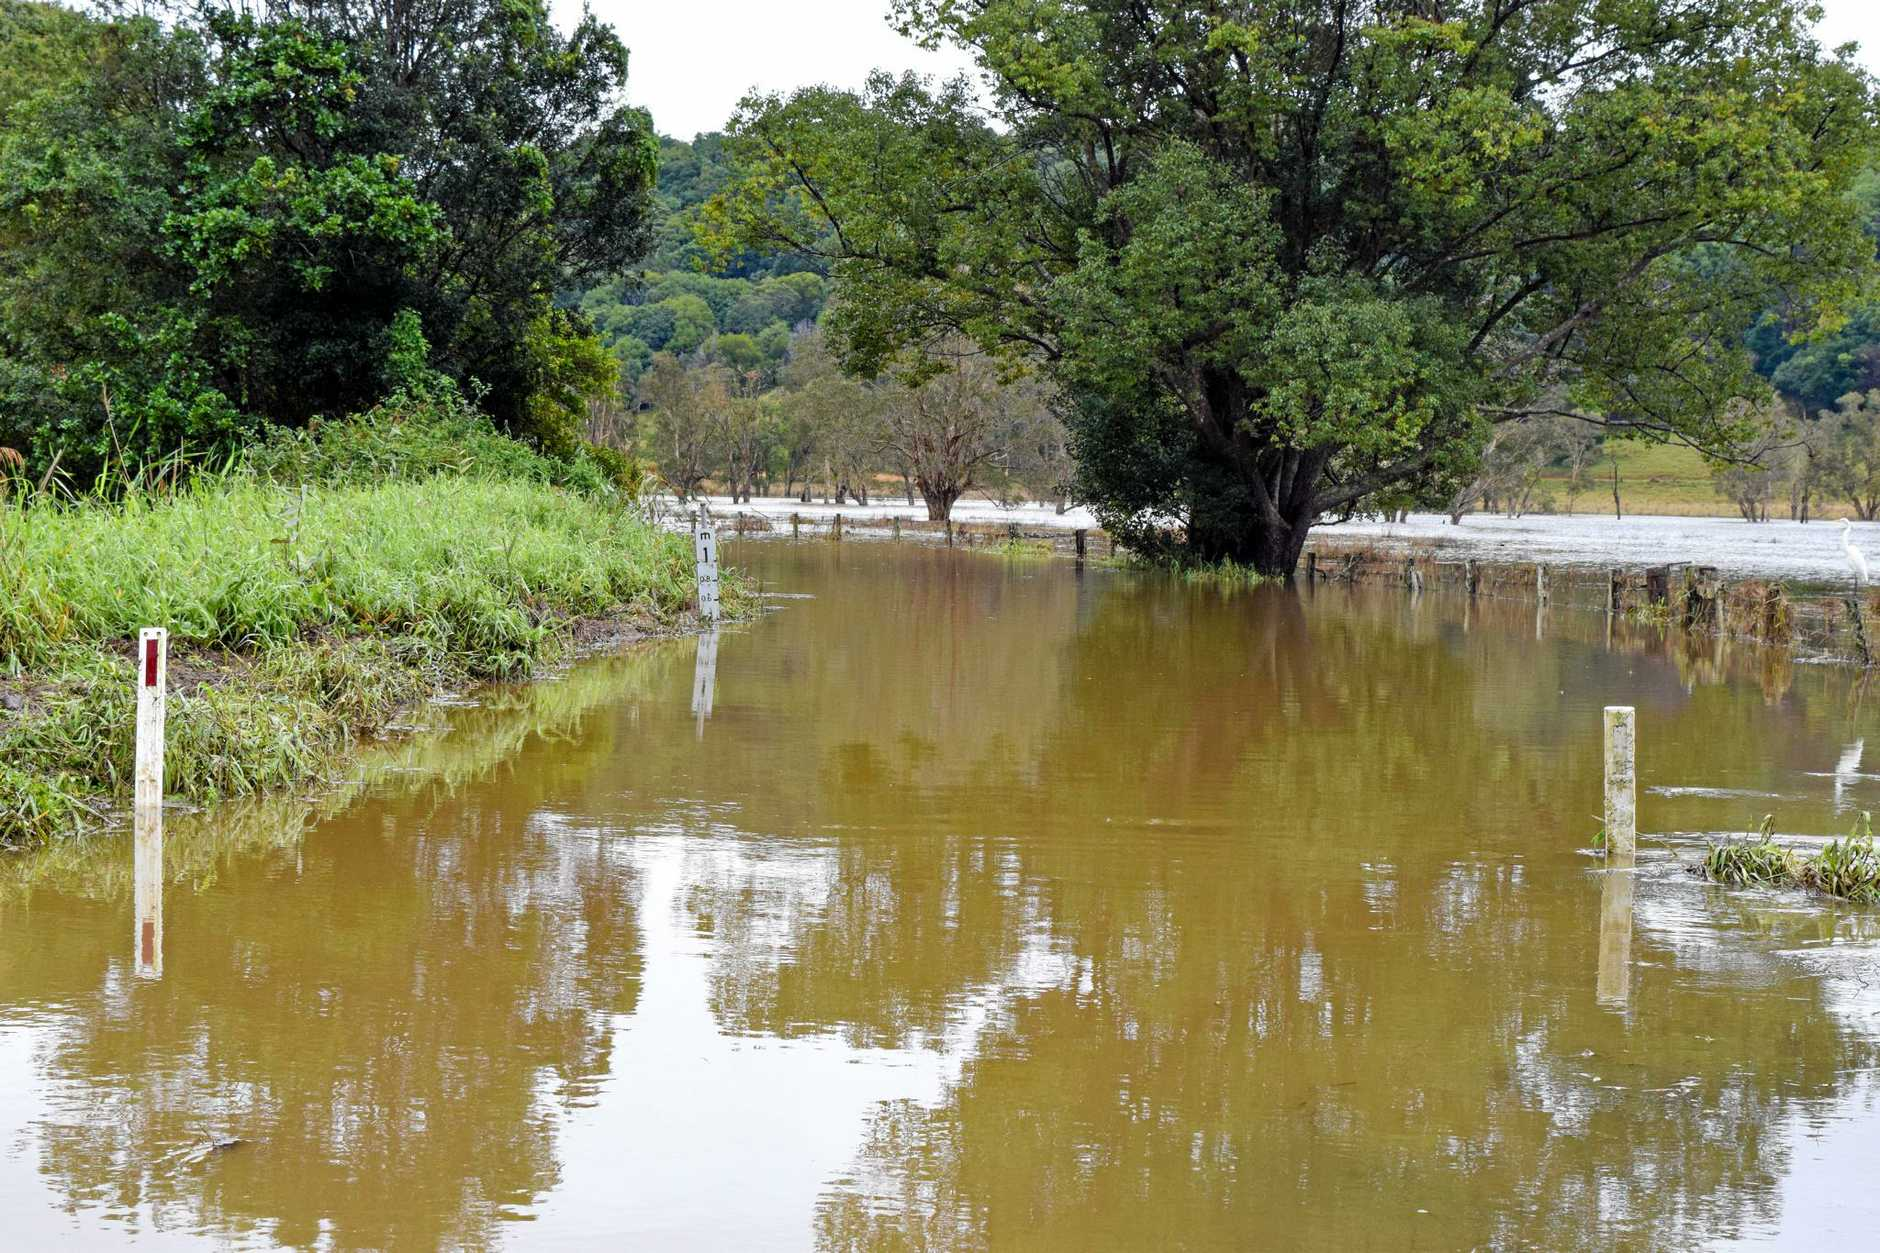 Old Bangalow Road downstream from Tintenbar Road to Tamarind Drive has been cut off by rising waters.